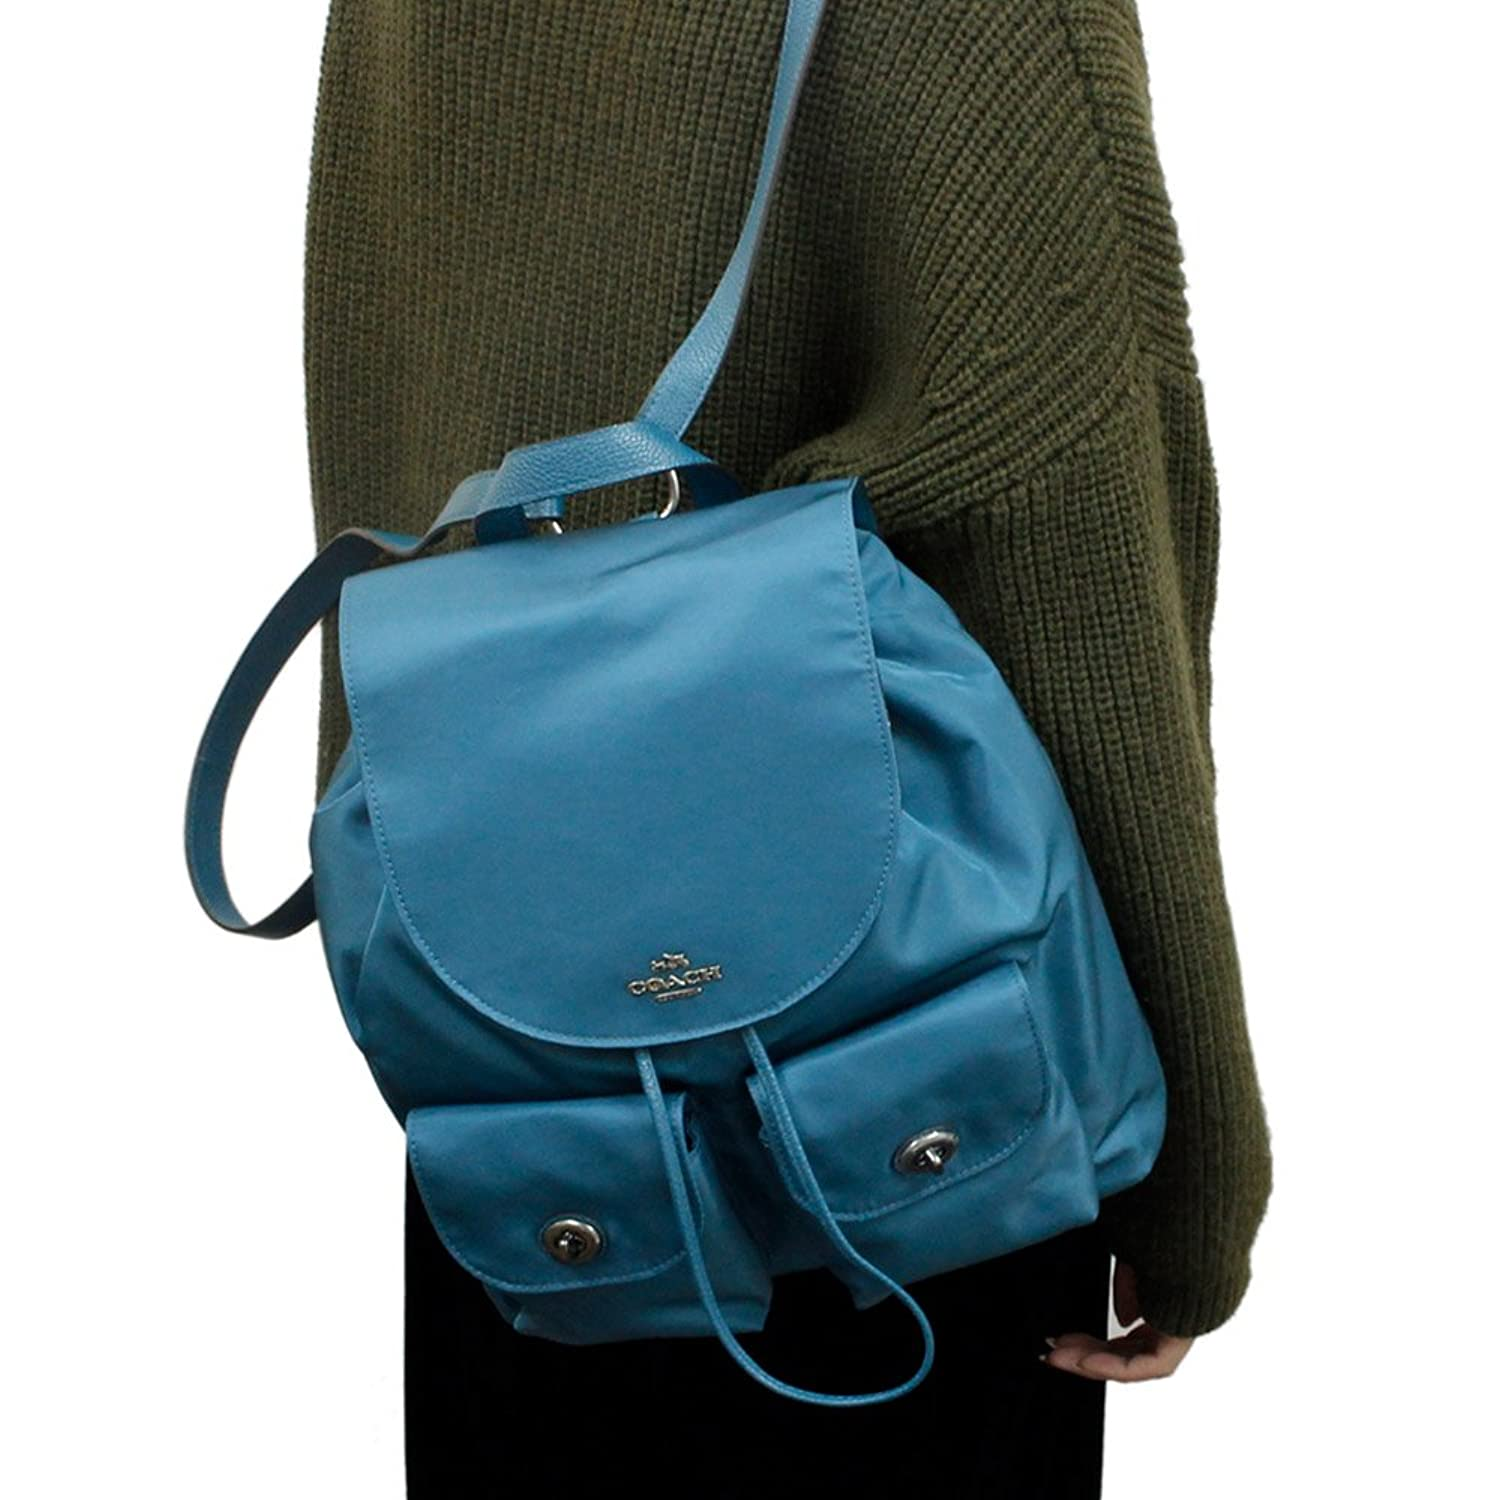 e761a9df4 NWT COACH NYLON DARK TEAL BACKPACK BOOKBAG BAG LEATHER STRAP F58814 ...